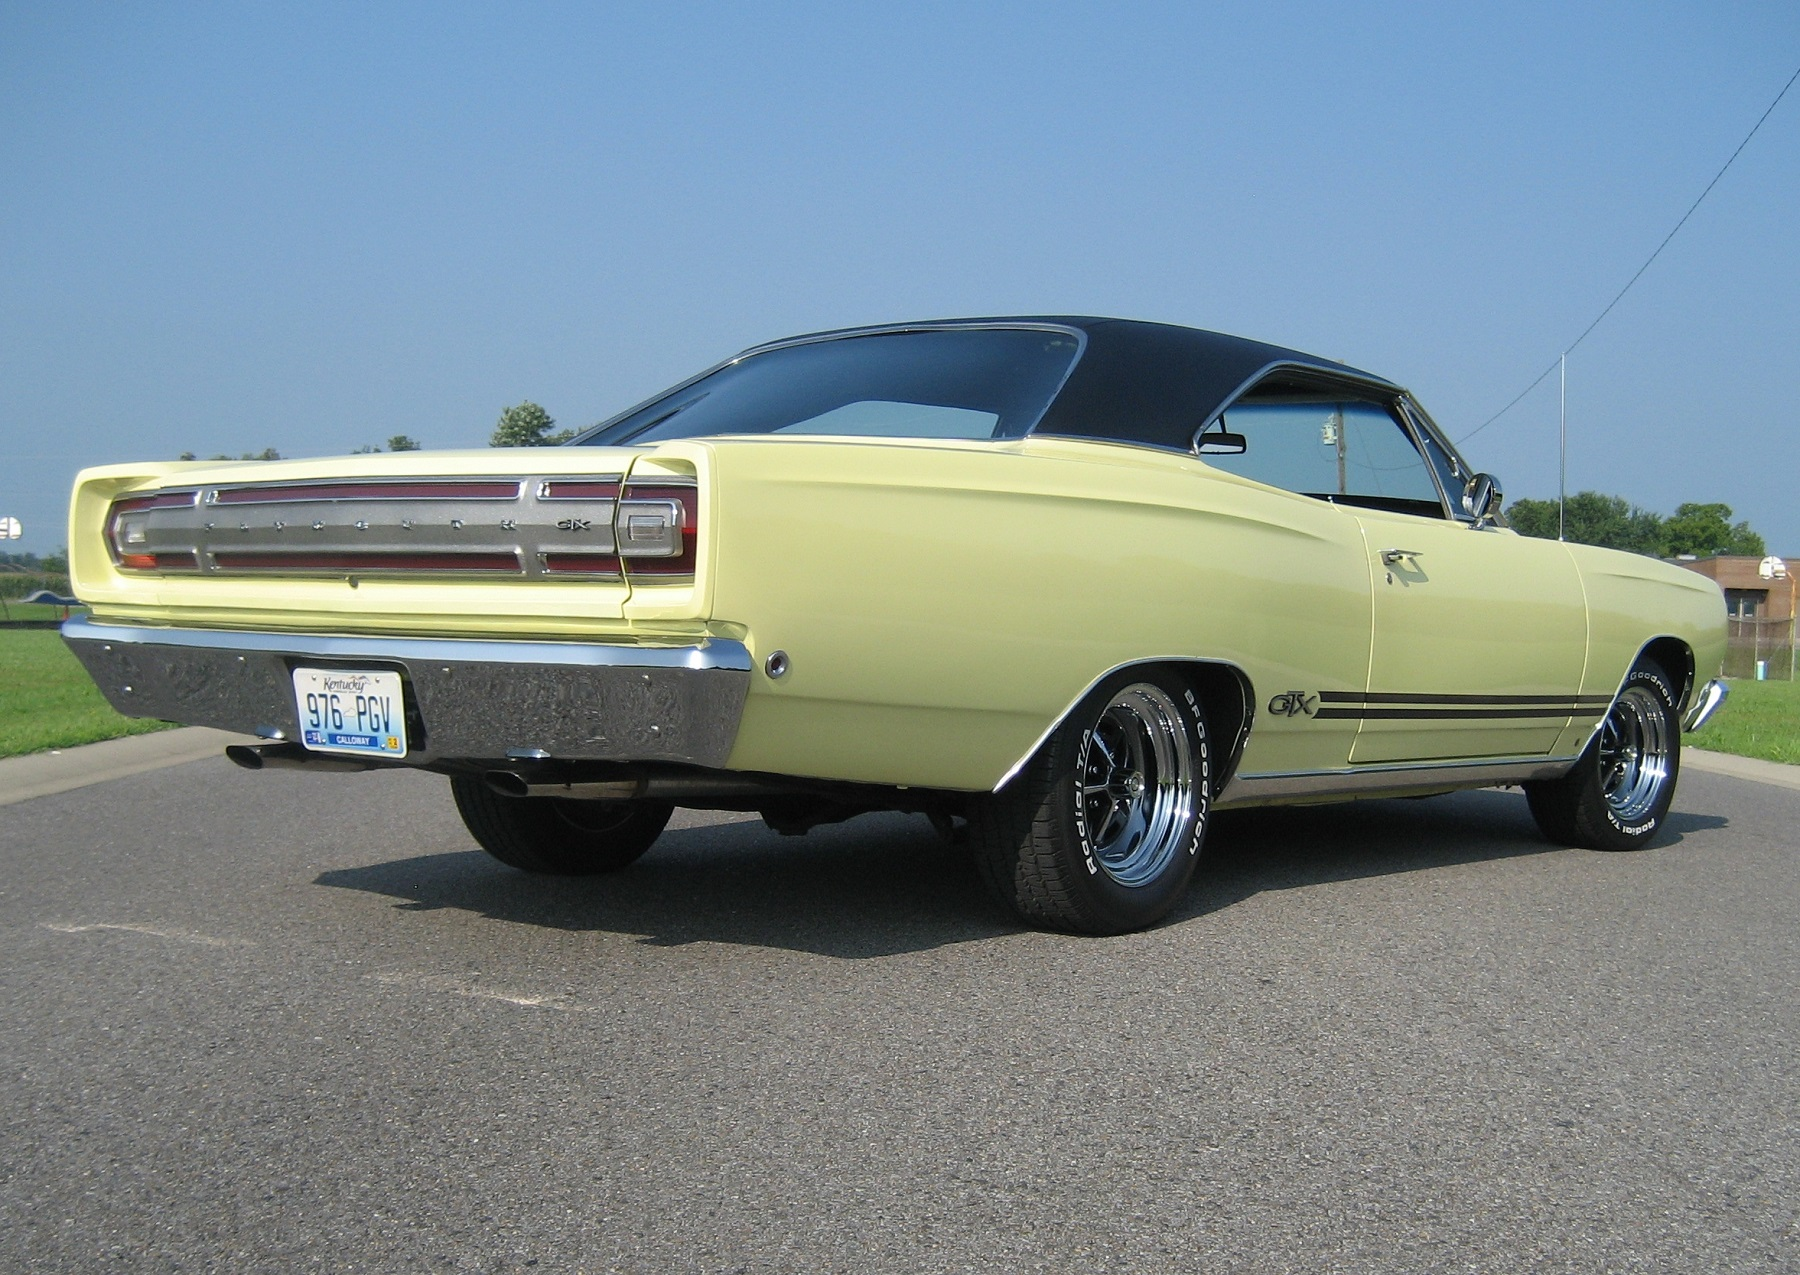 1968 Plymouth GTX from the Muscle Car Era - Classic Classics ...